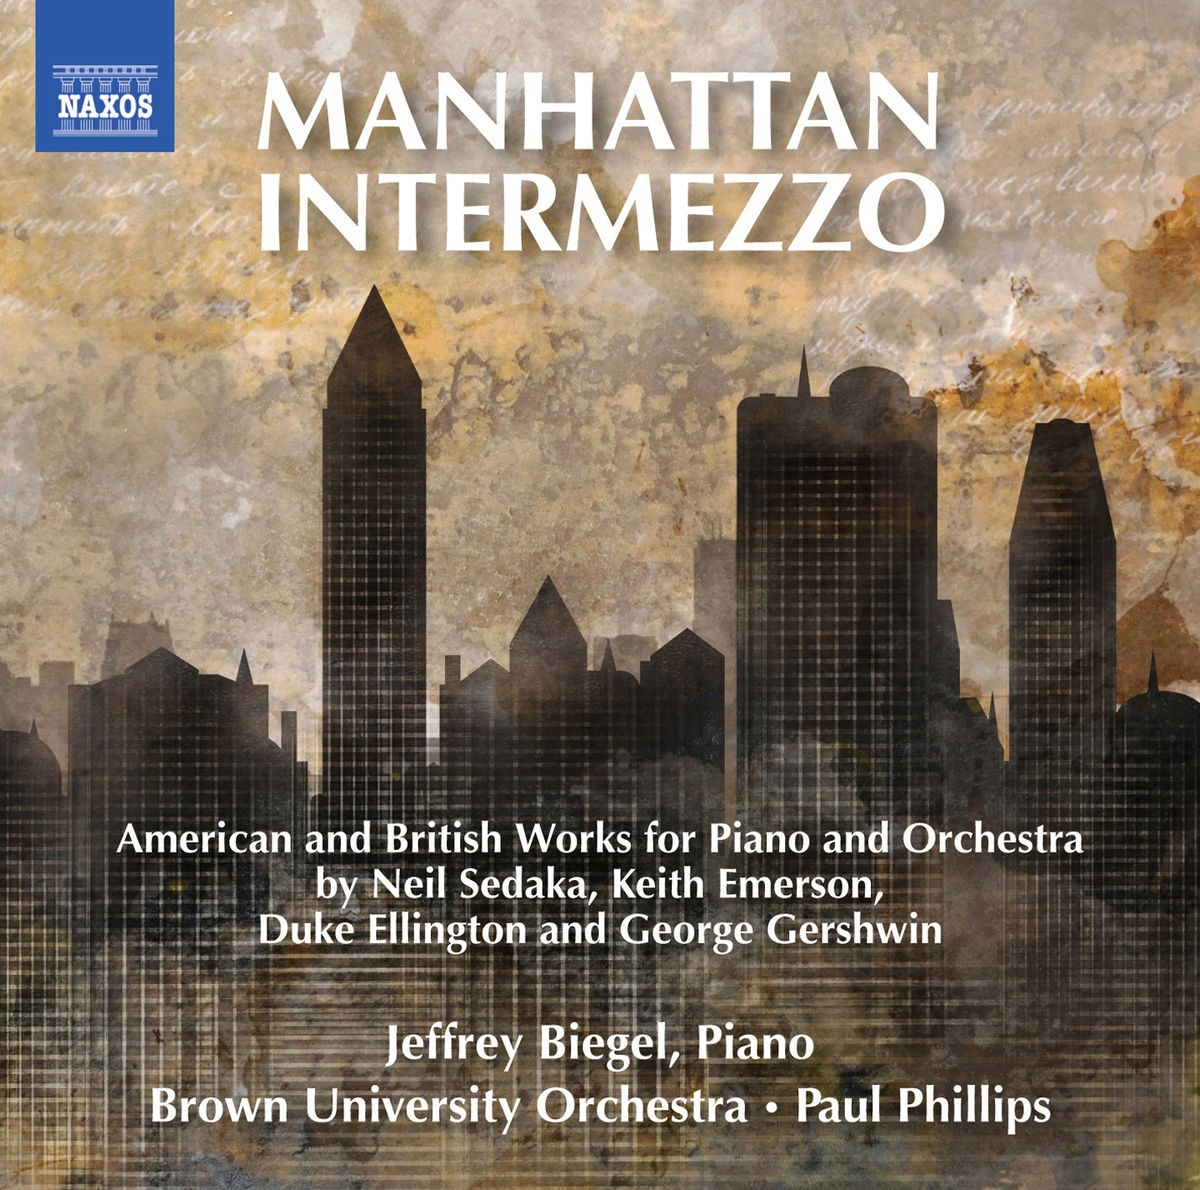 Jeffrey Biegel , Brown University Orchestra & Paul Phillips - Manhattan Intermezzo CD - 8573490